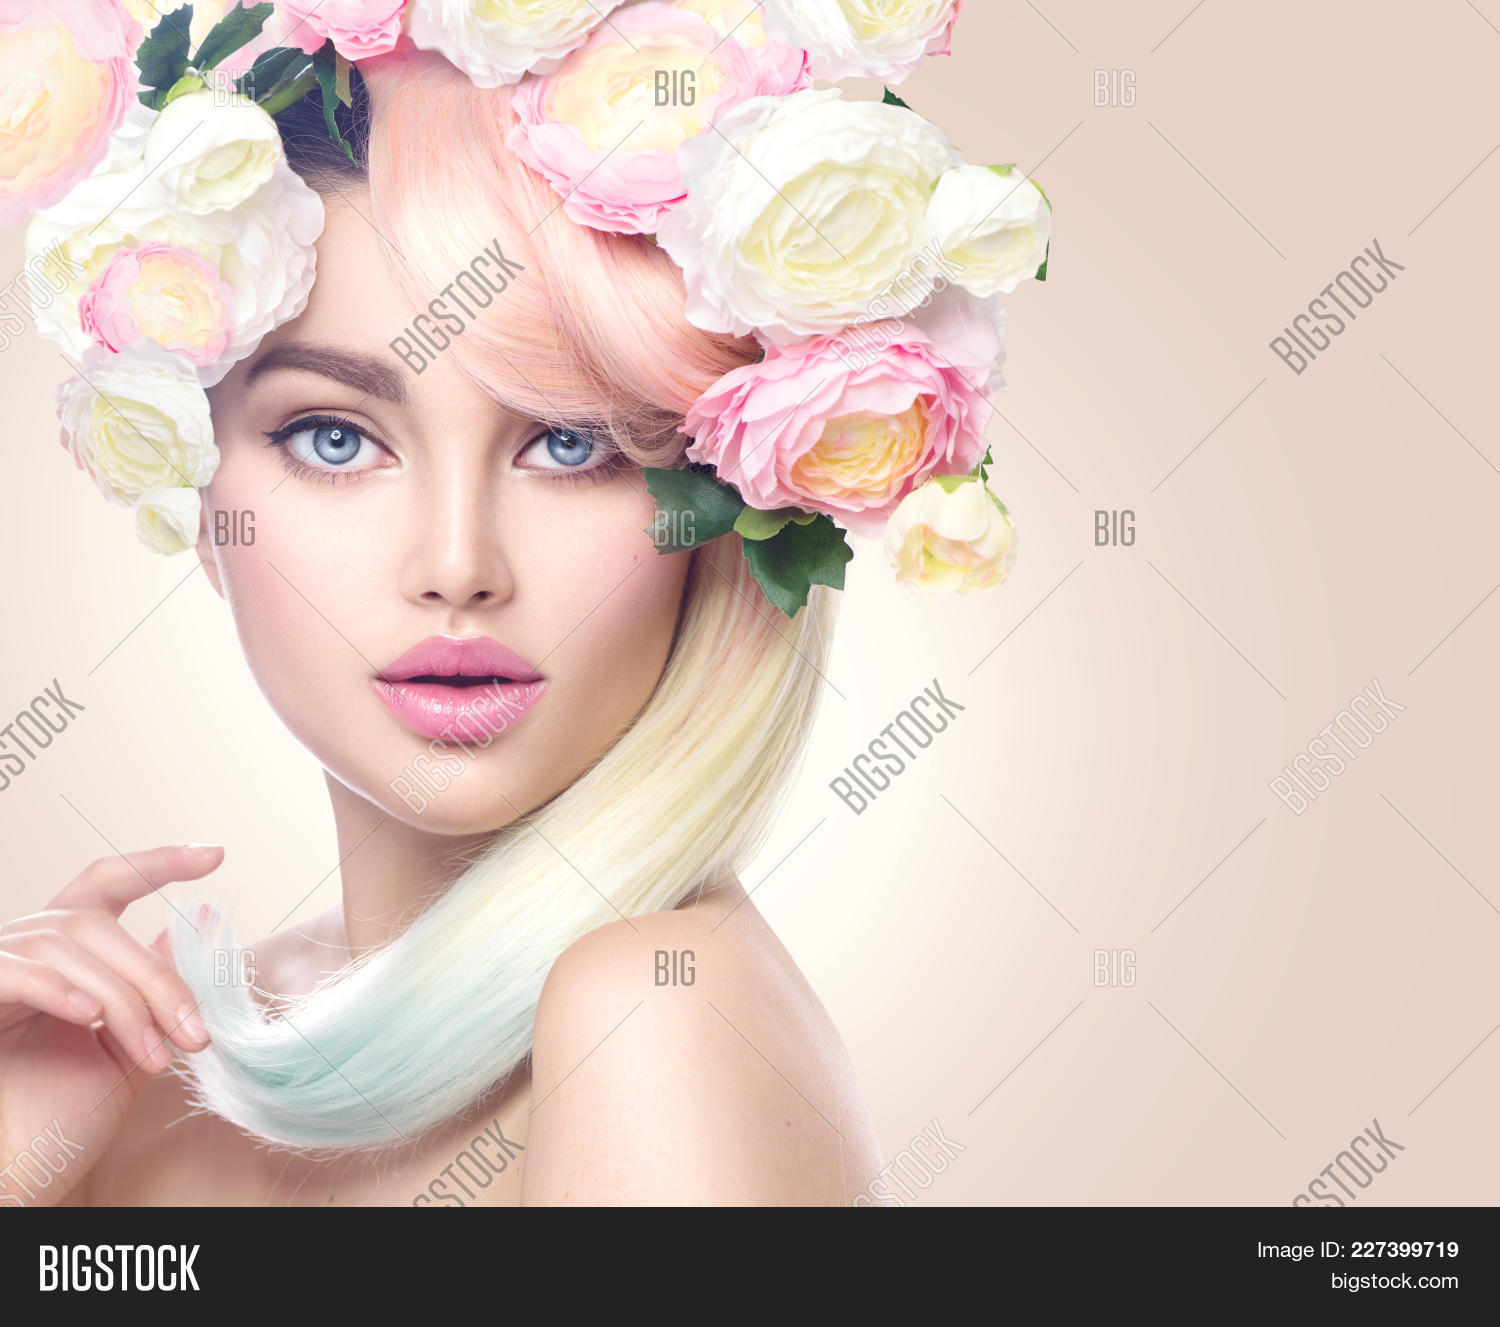 Spring woman beauty summer model image photo bigstock beauty summer model girl with colorful flowers wreath and colorful hair flowers izmirmasajfo